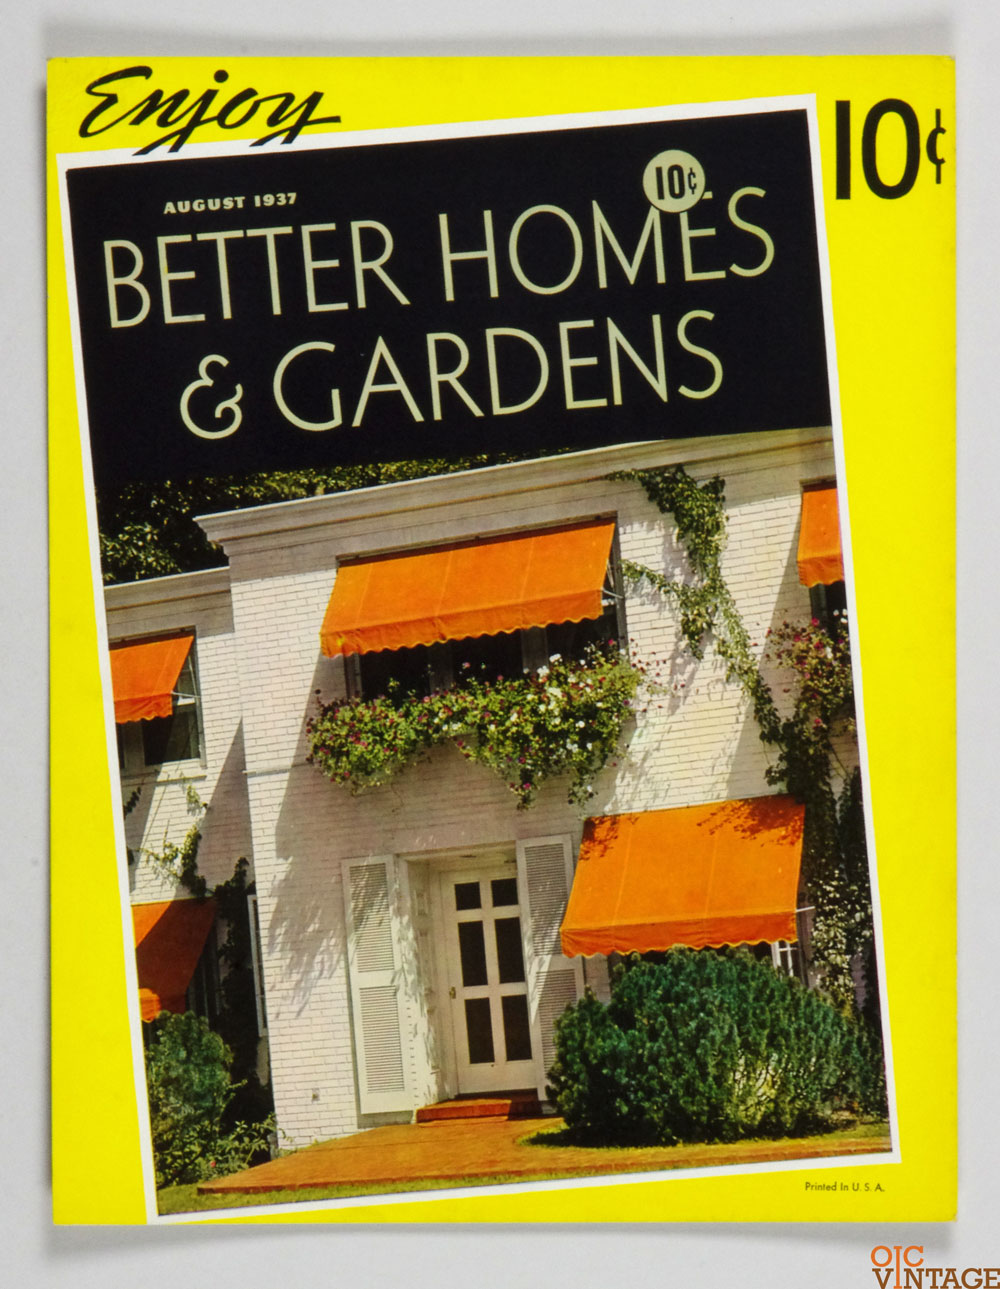 Better Homes & Gardens Cardboard Display  1937 August  Magazine Cover